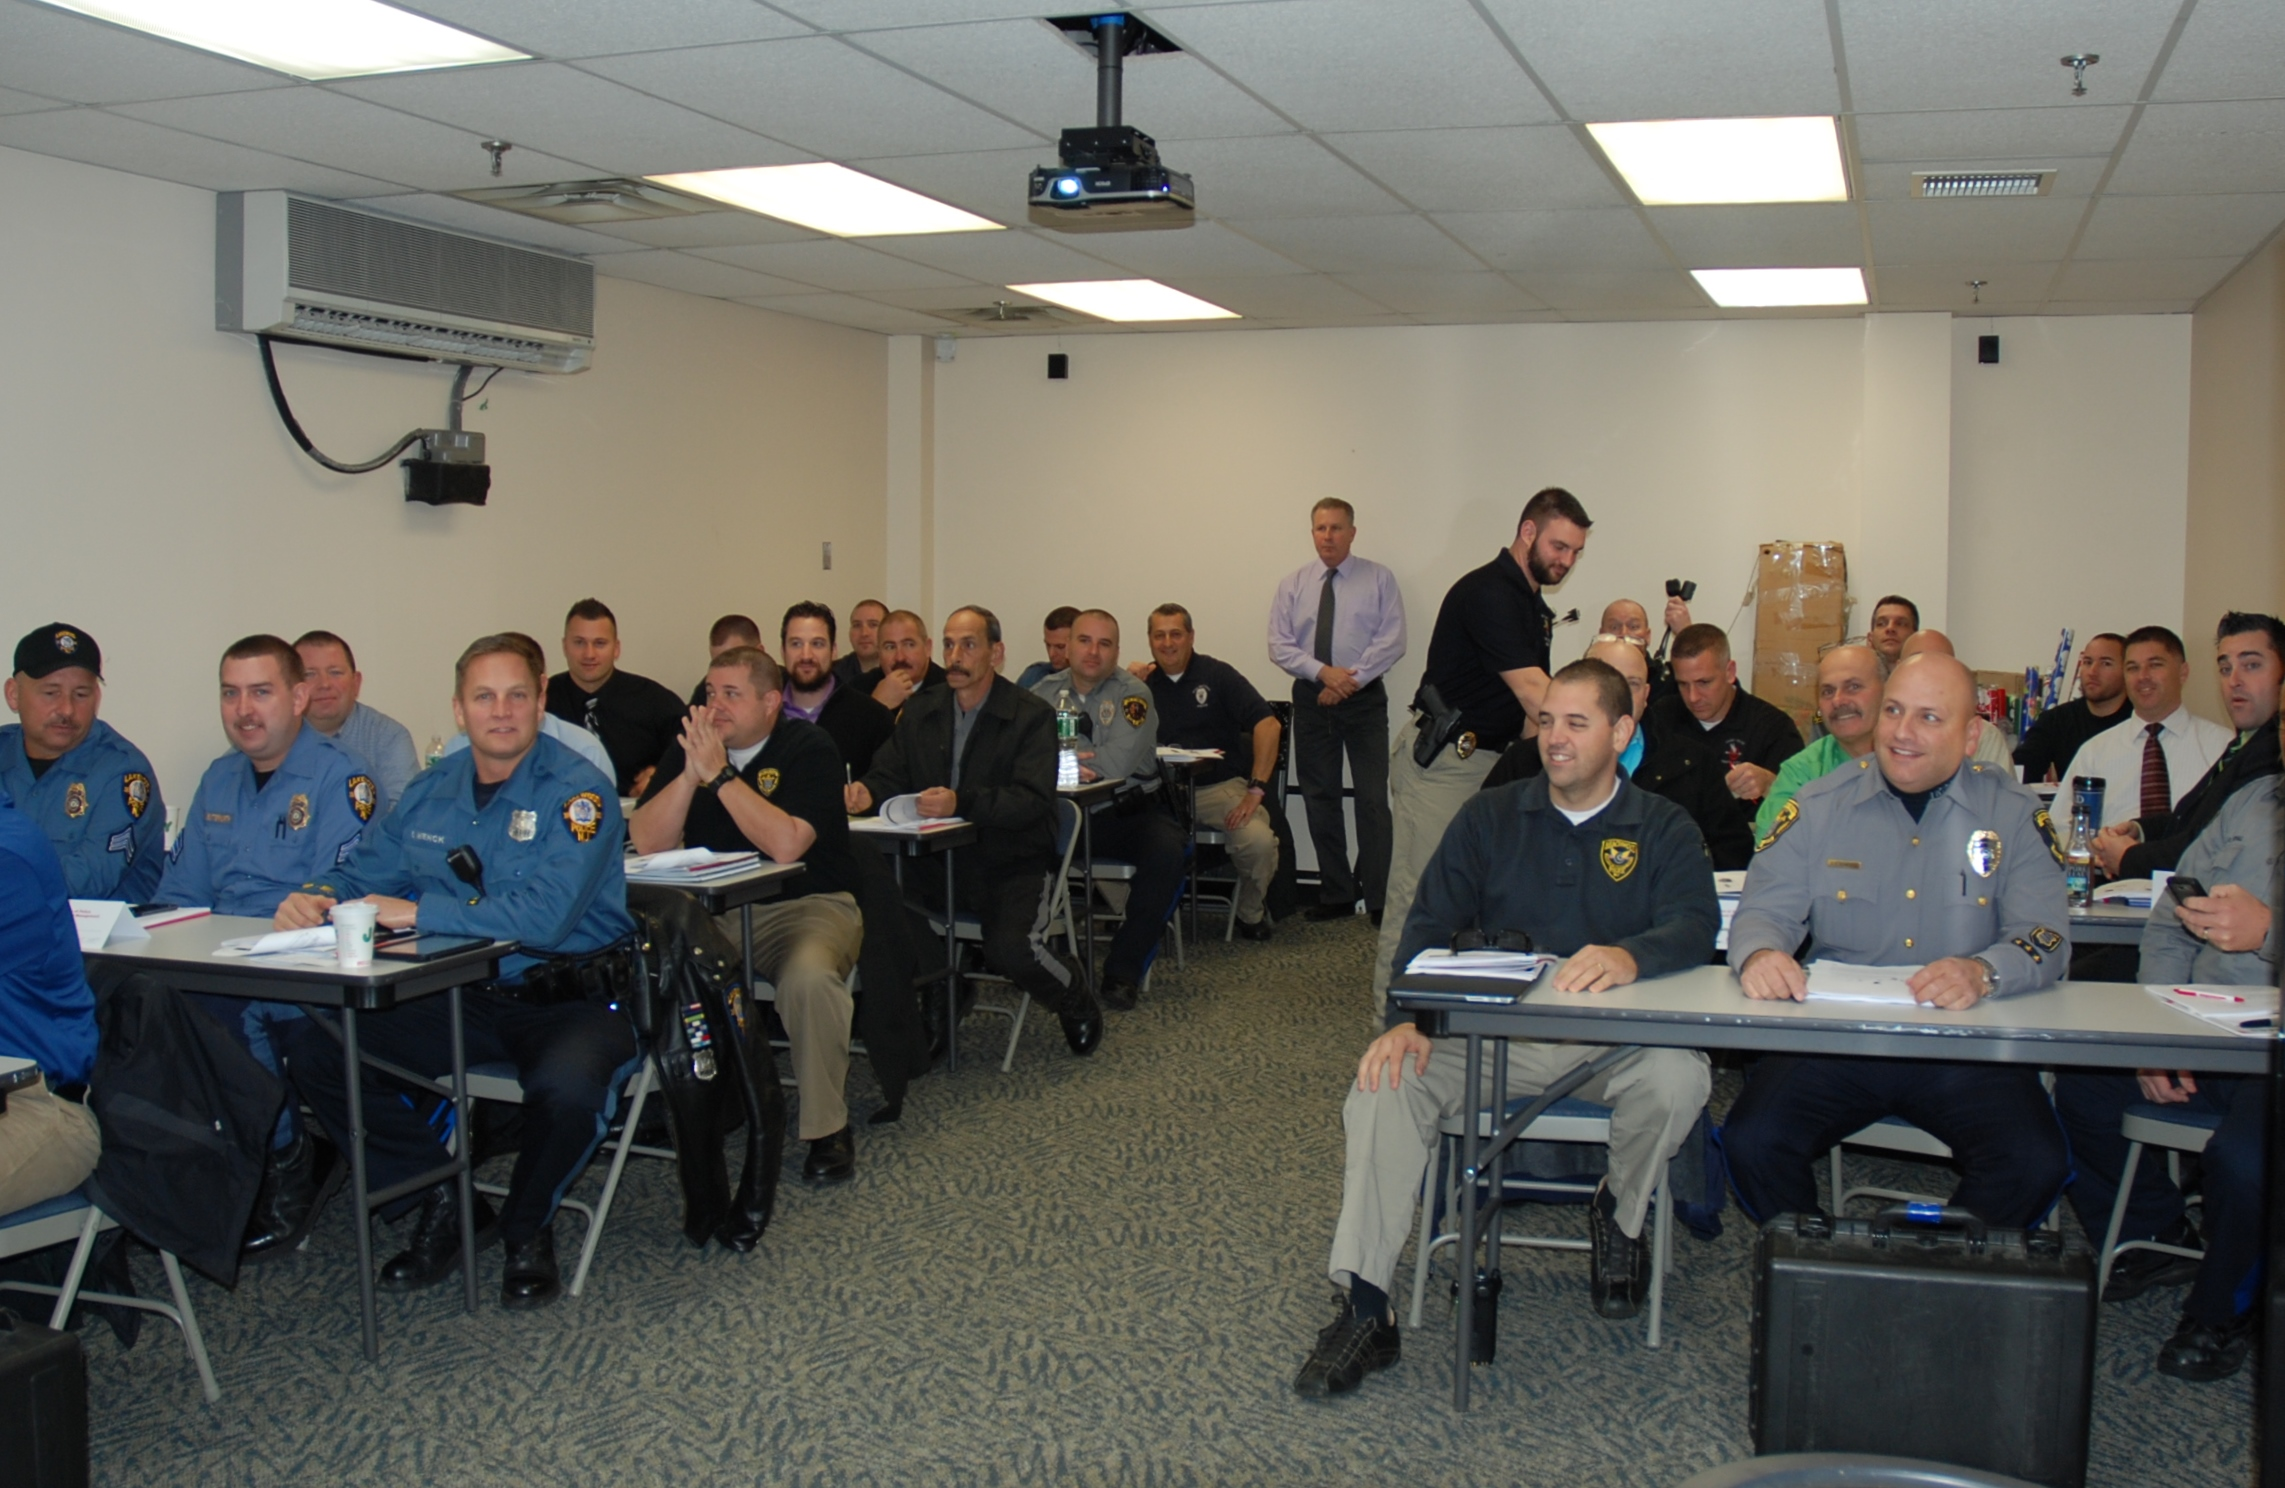 Manchester Police Host County Wide Technician Training